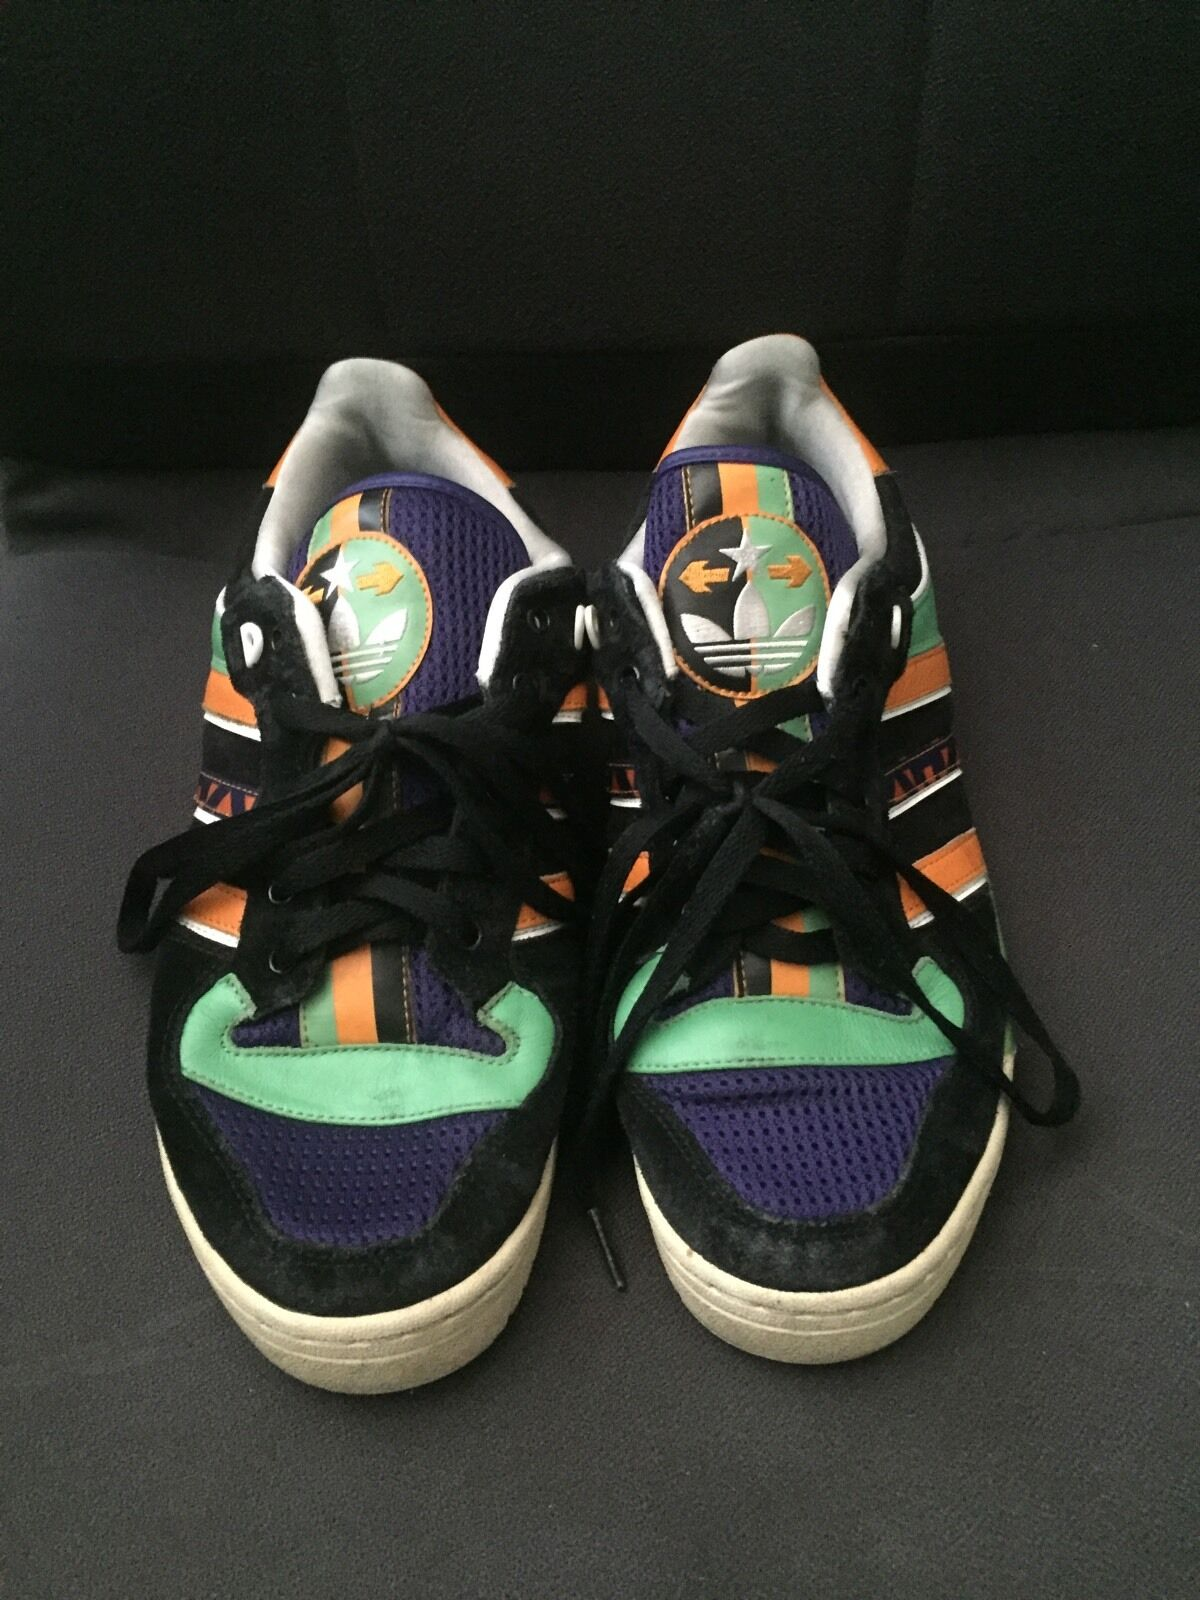 b640d73a3 Mens Adidas 2009 2009 2009 NBA All Star Sneakers Shoes Size 10.5 VERY RARE!